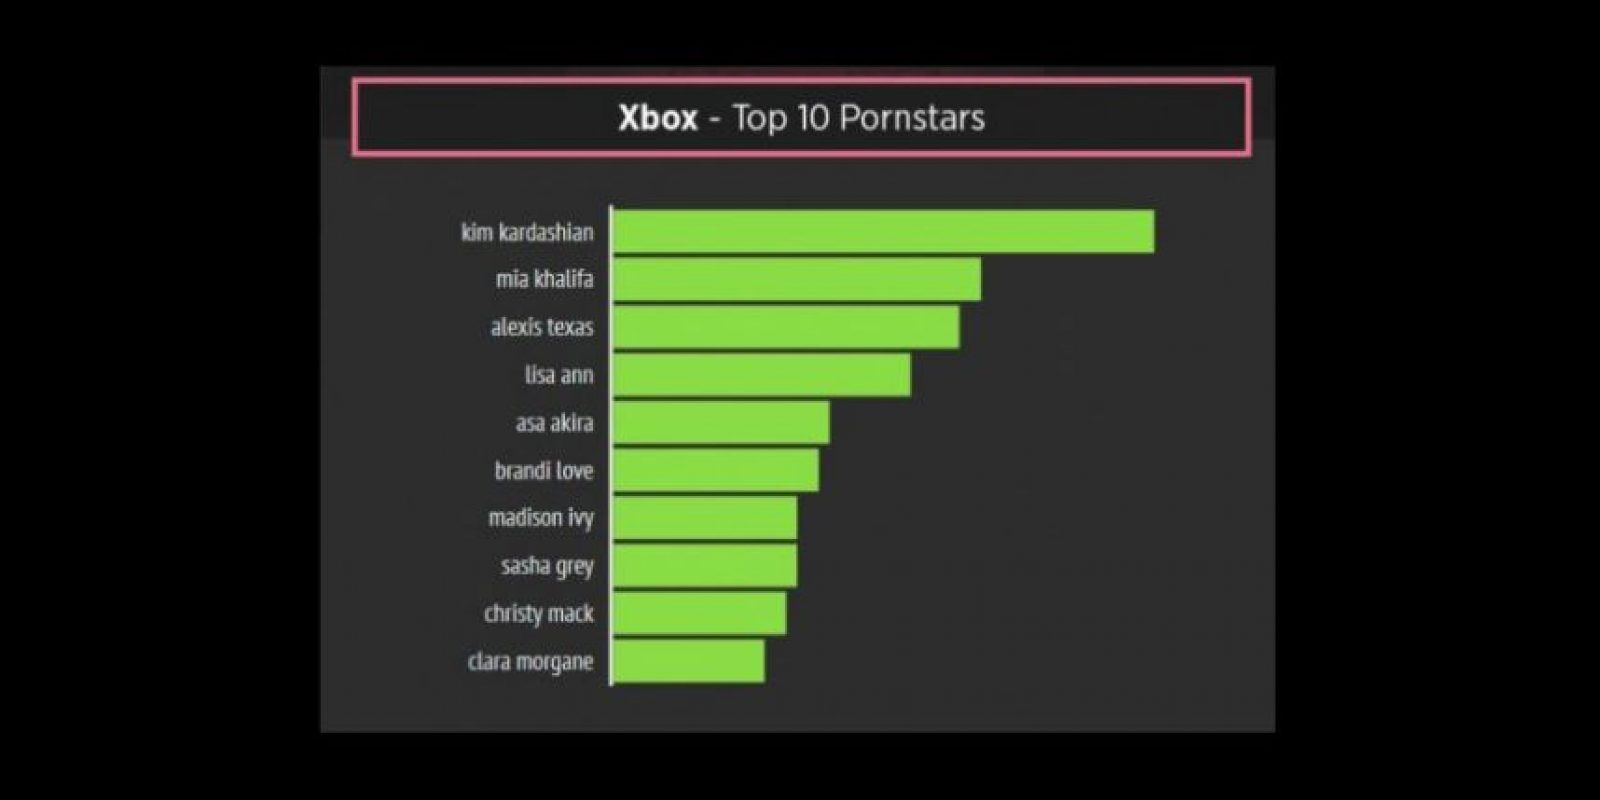 Preferencias de usuarios de Xbox Foto: YouPorn.com/world